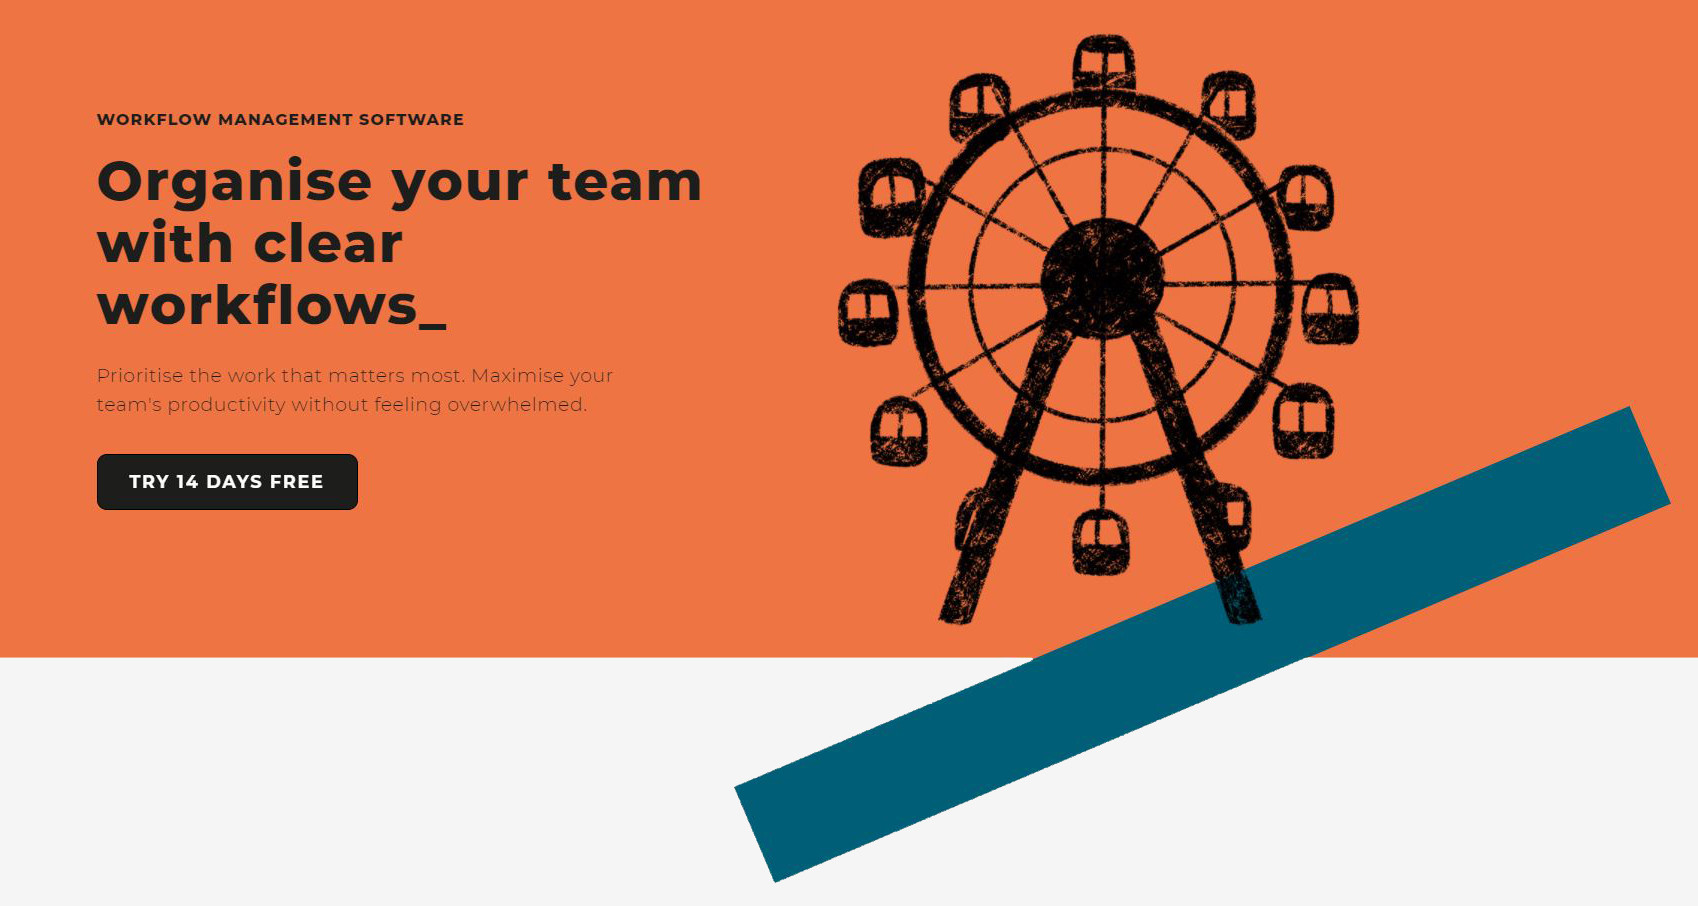 Organise your team with clear workflows